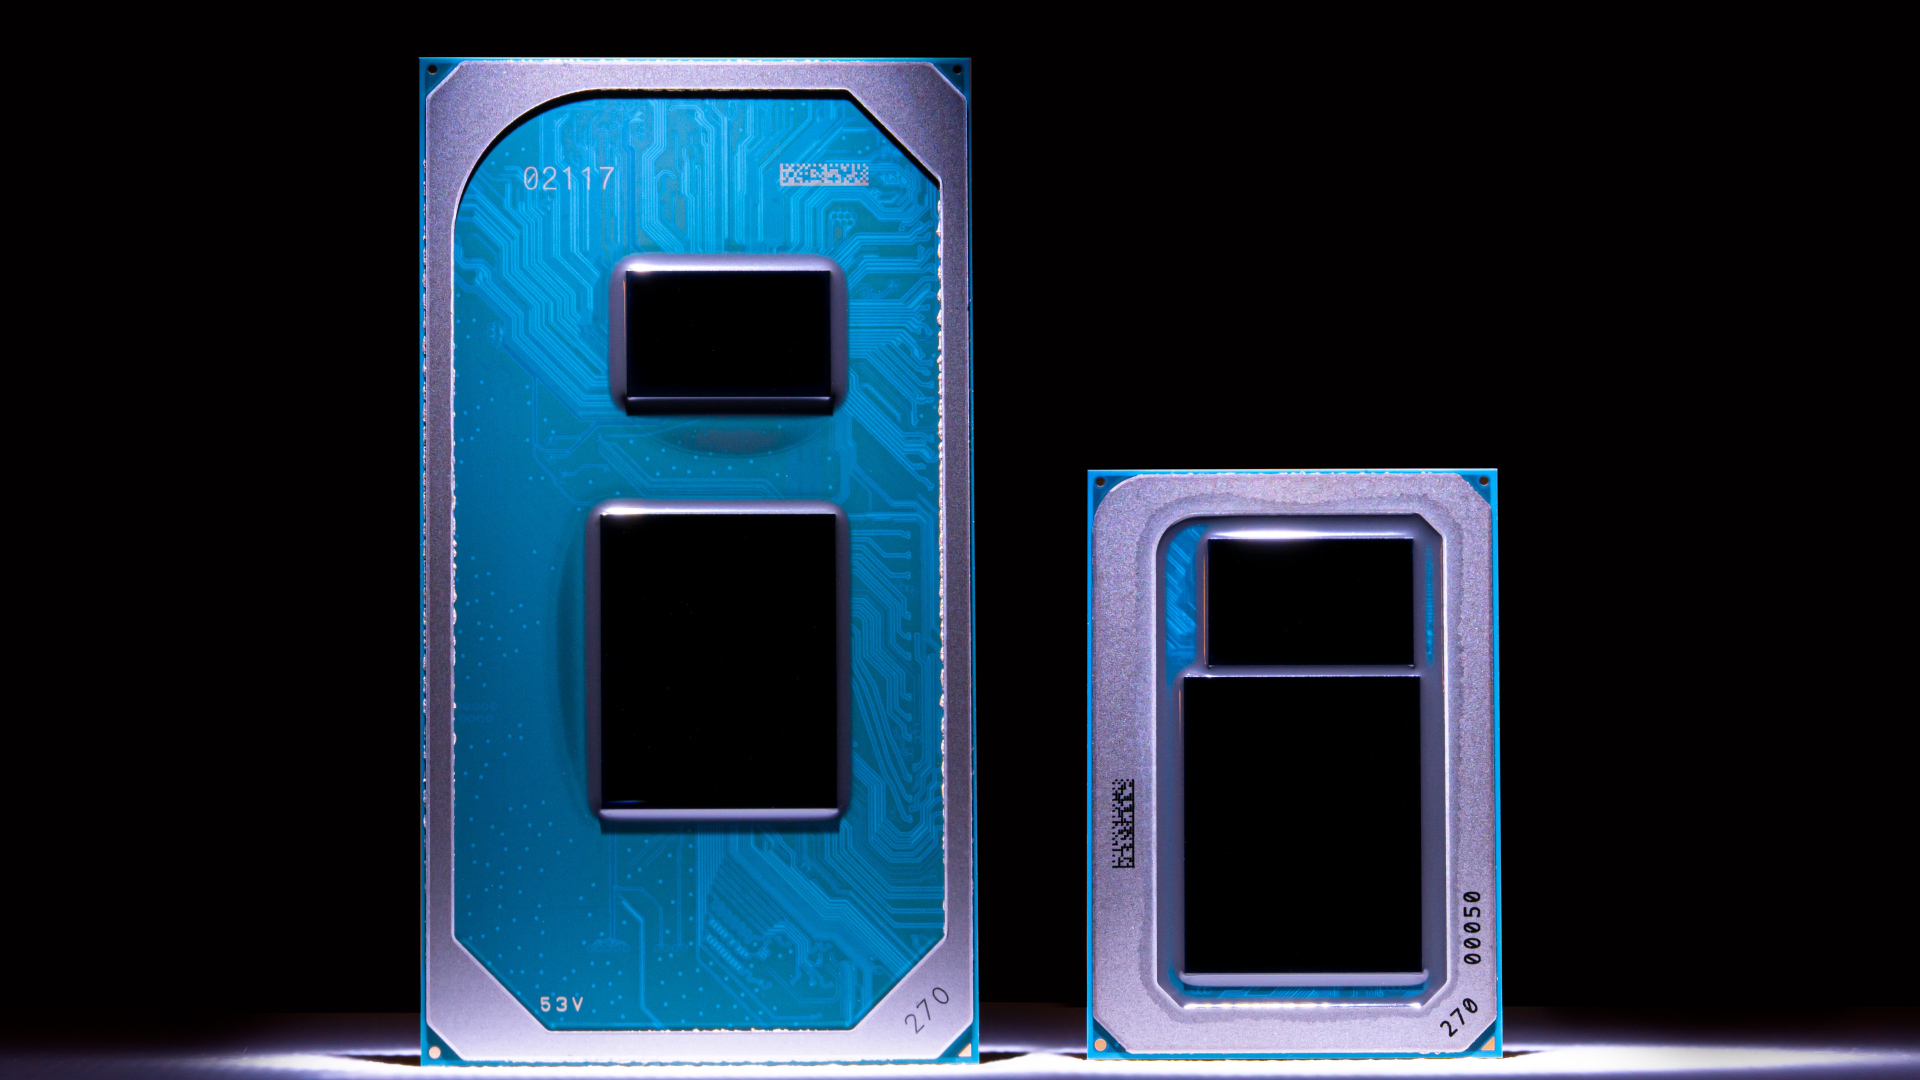 Intel Alder Lake CPUs – everything we know about the 12th gen